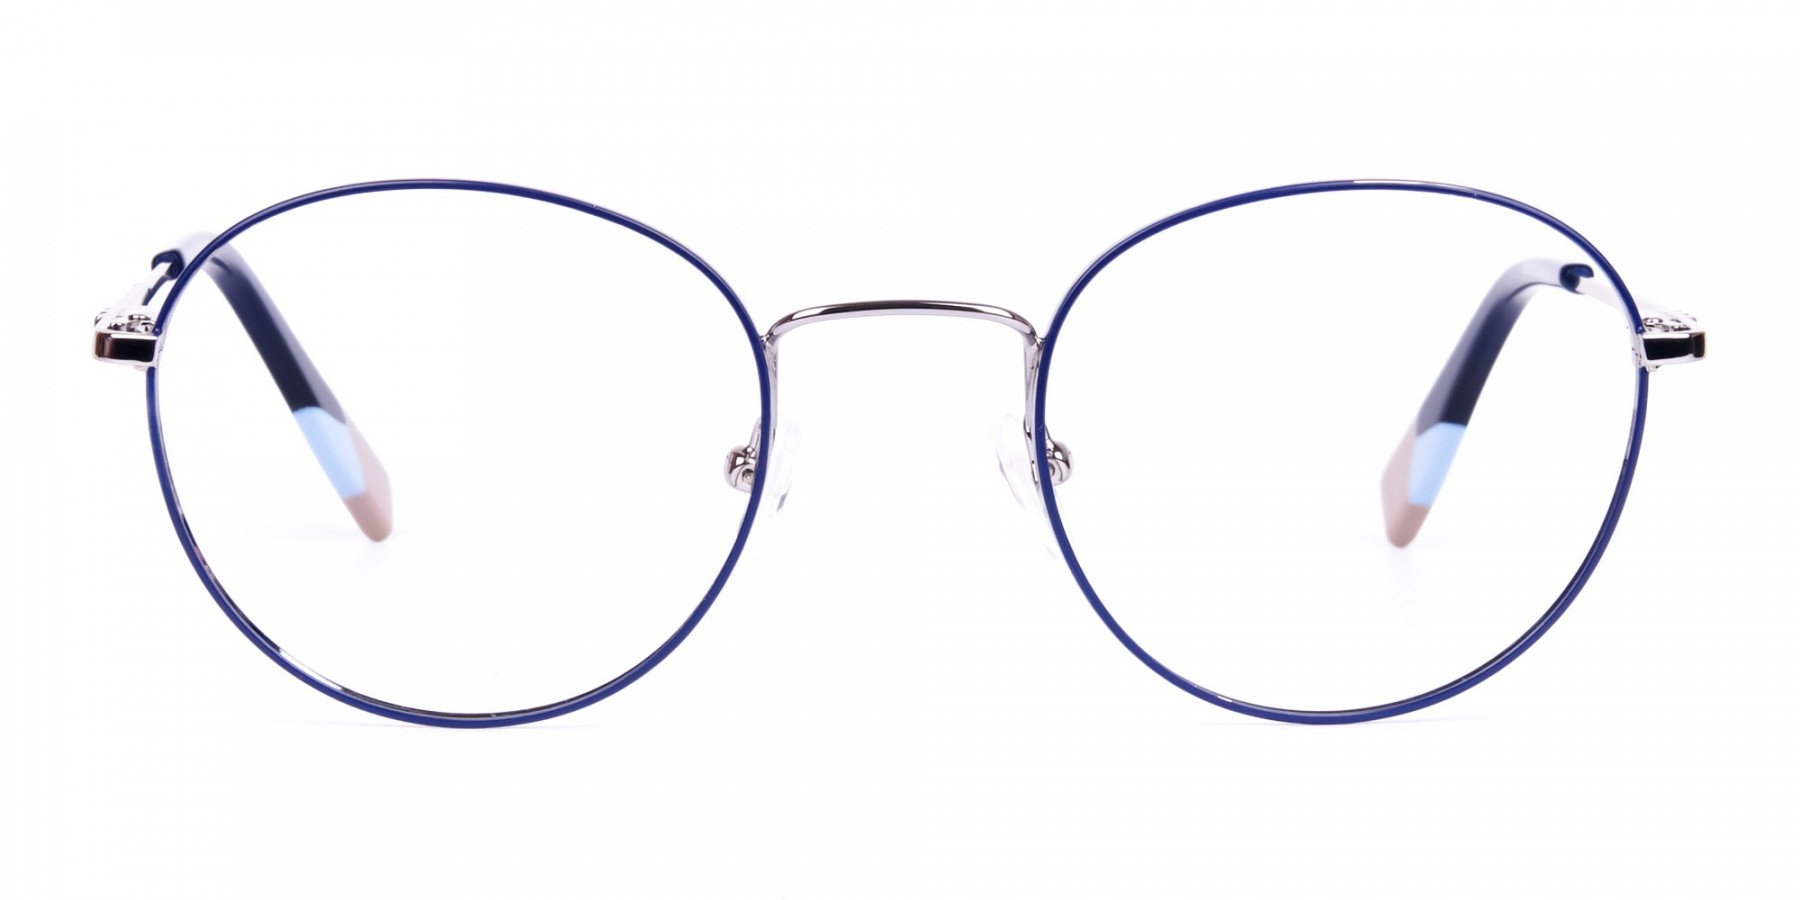 Dark-Navy-Blue-and-Silver-Round-Glasses-1